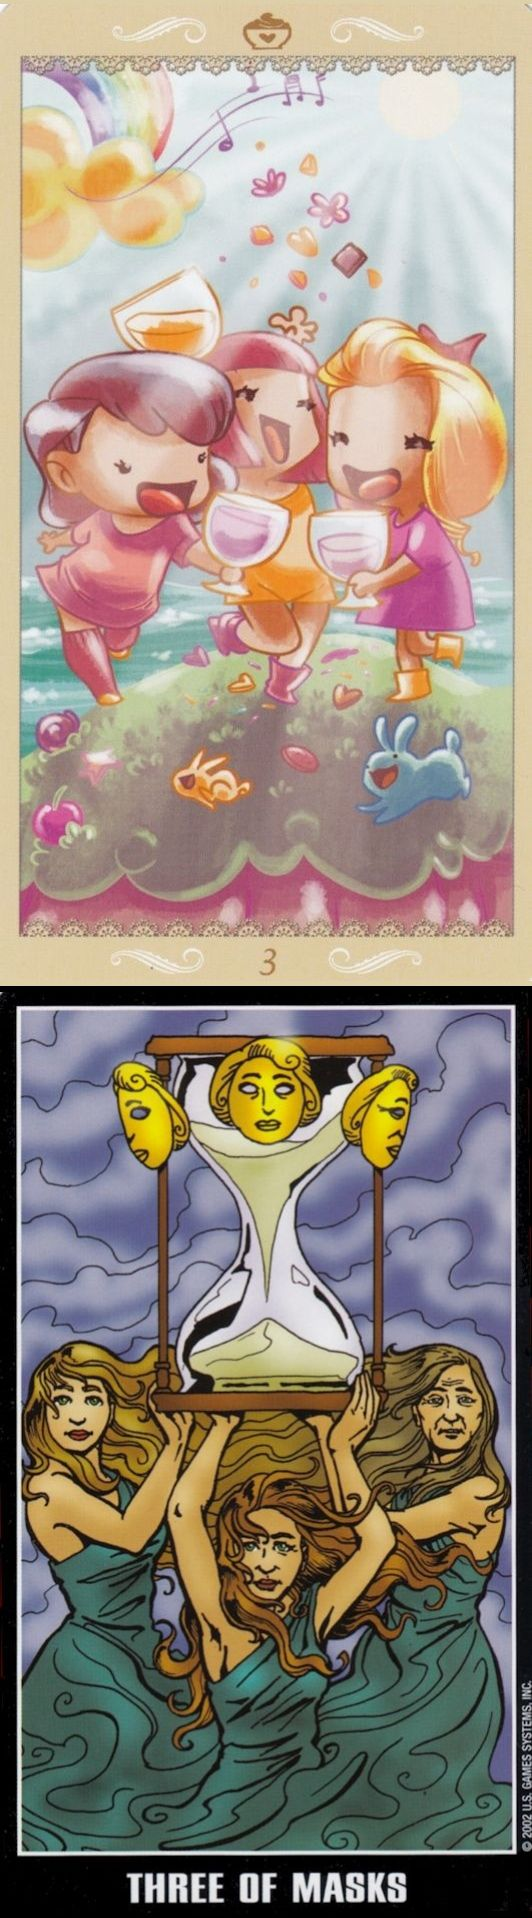 Three of Cups: friendship and herd mentality (reverse). Happy Tarot deck and Adventure Tarot deck: one card tarot, horoscope tarot cards and free psychic tarot card reading. The best tarot spreads and cartomancy meanings.